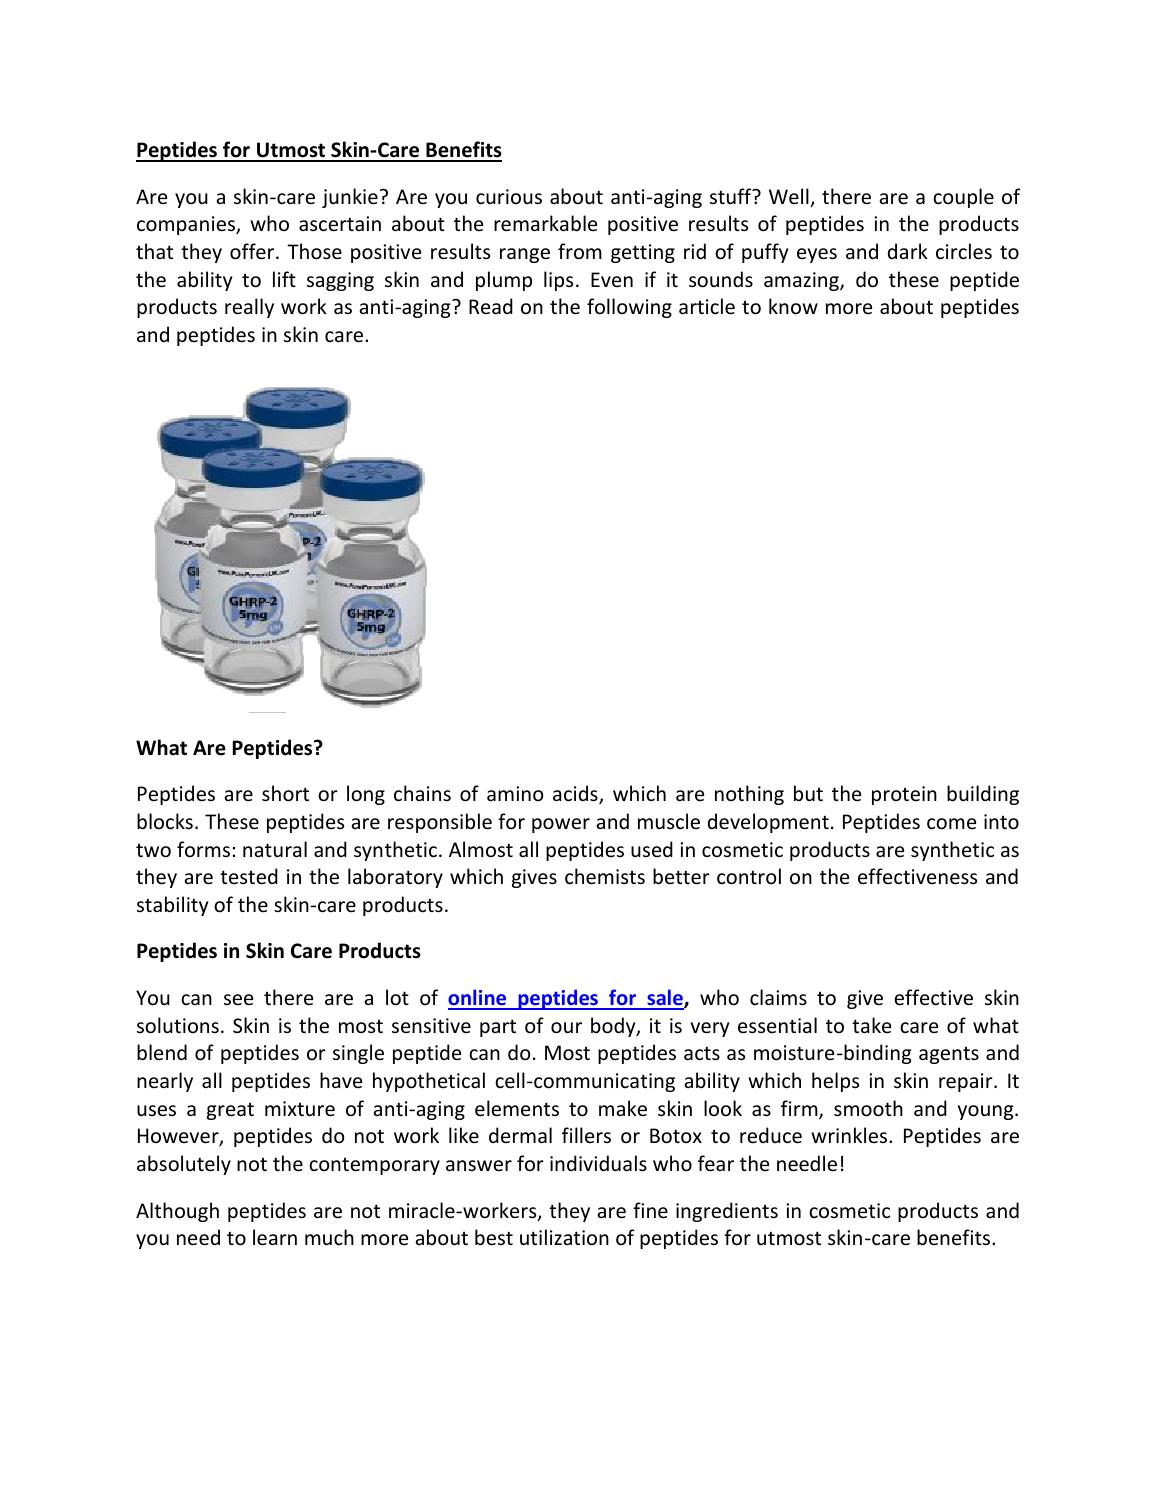 What are peptides